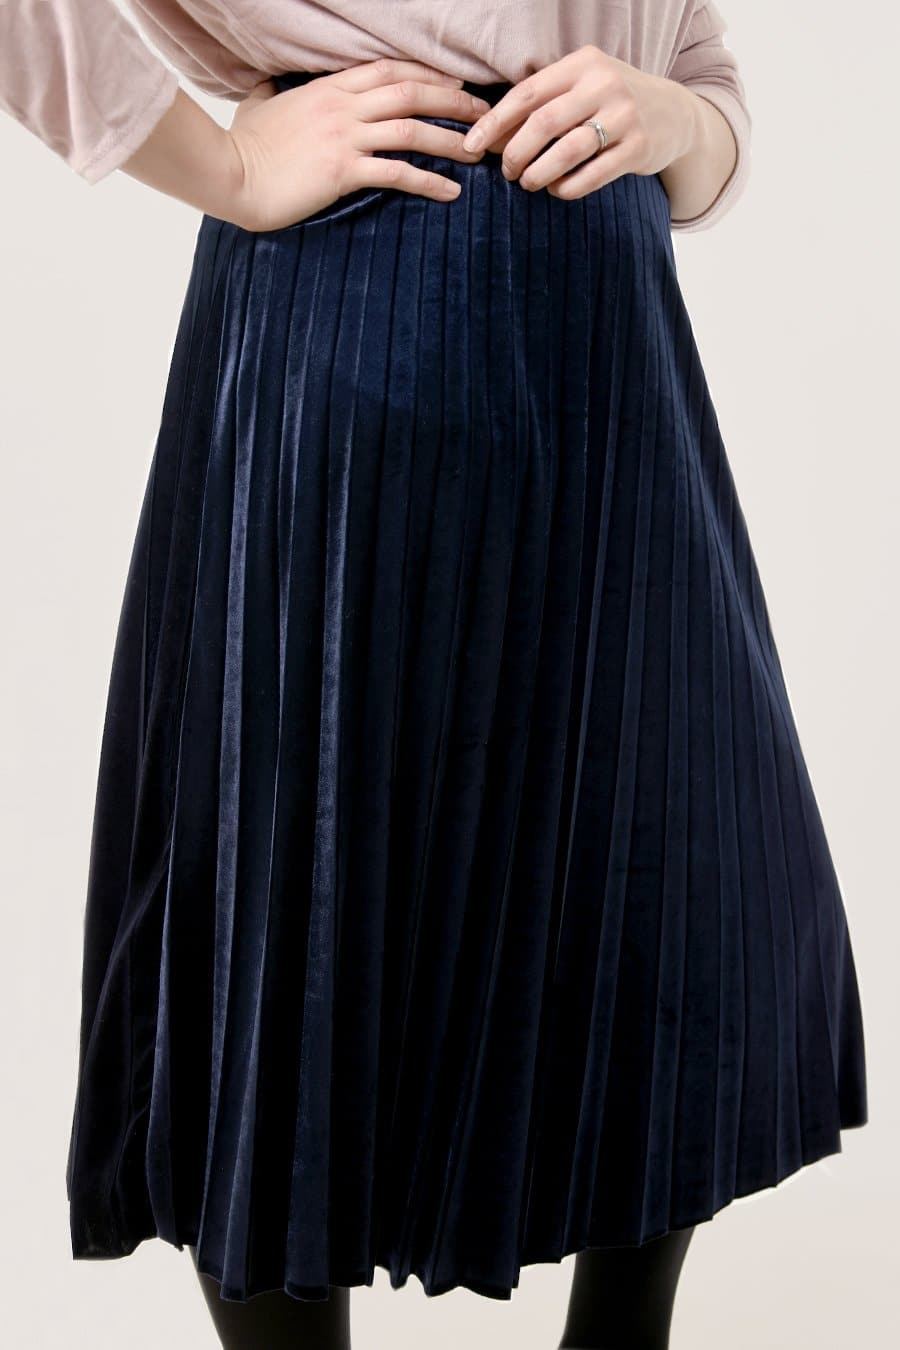 Pleated Velvet Skirt - Aurina Ltd